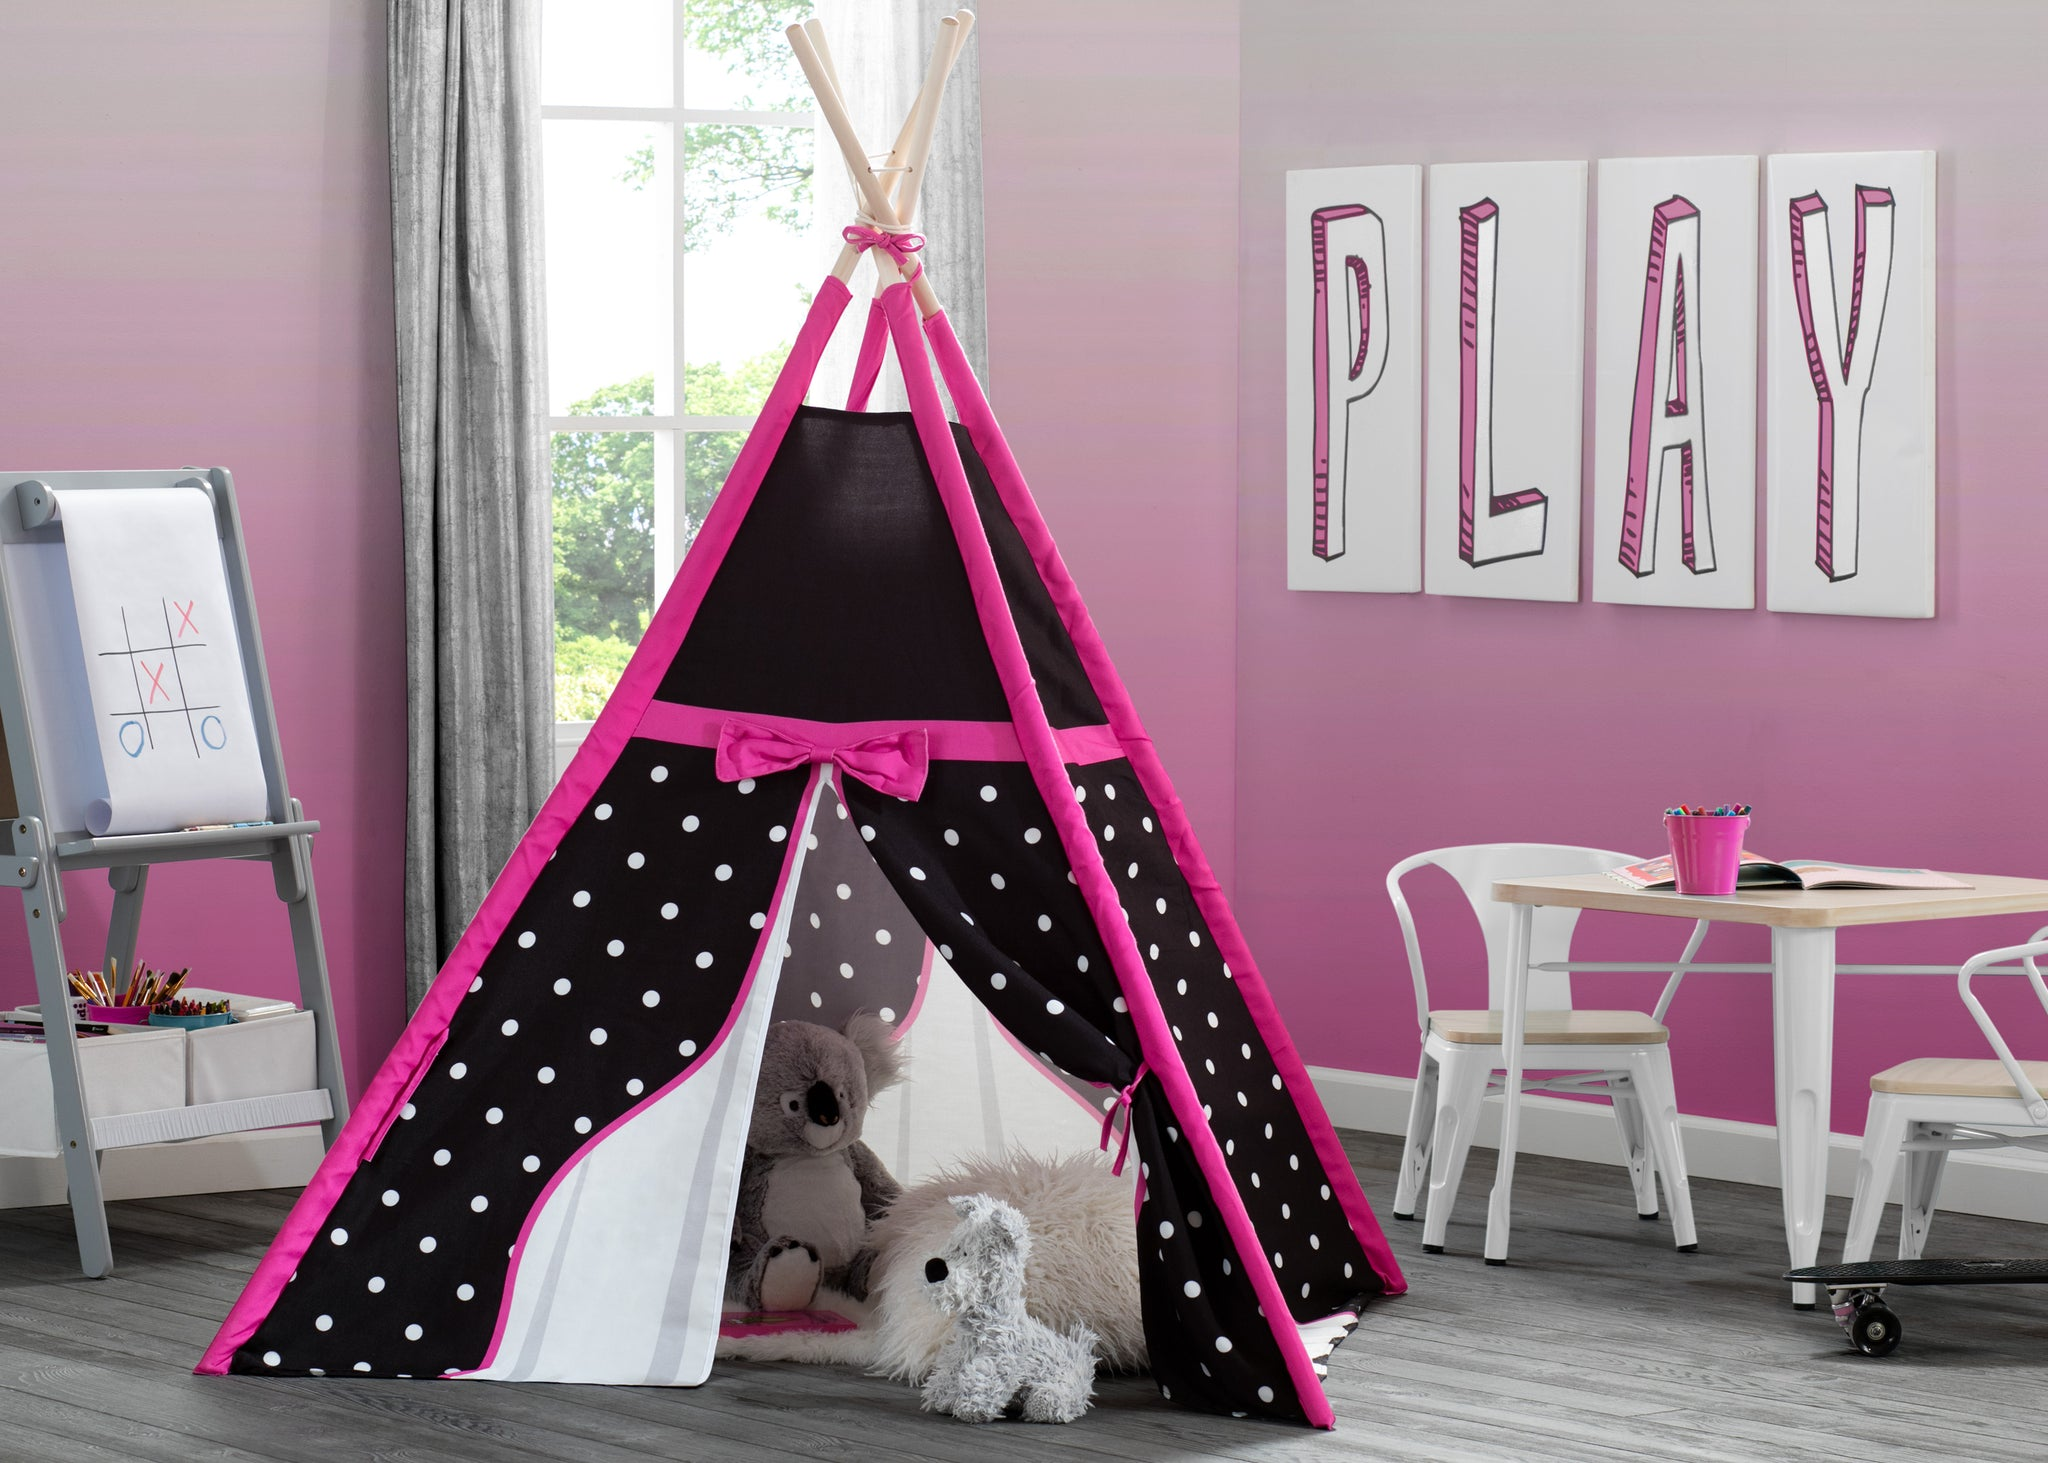 Delta Children Polka Dots and Bows (999) Teepee Play Tent for Kids, Hangtag View